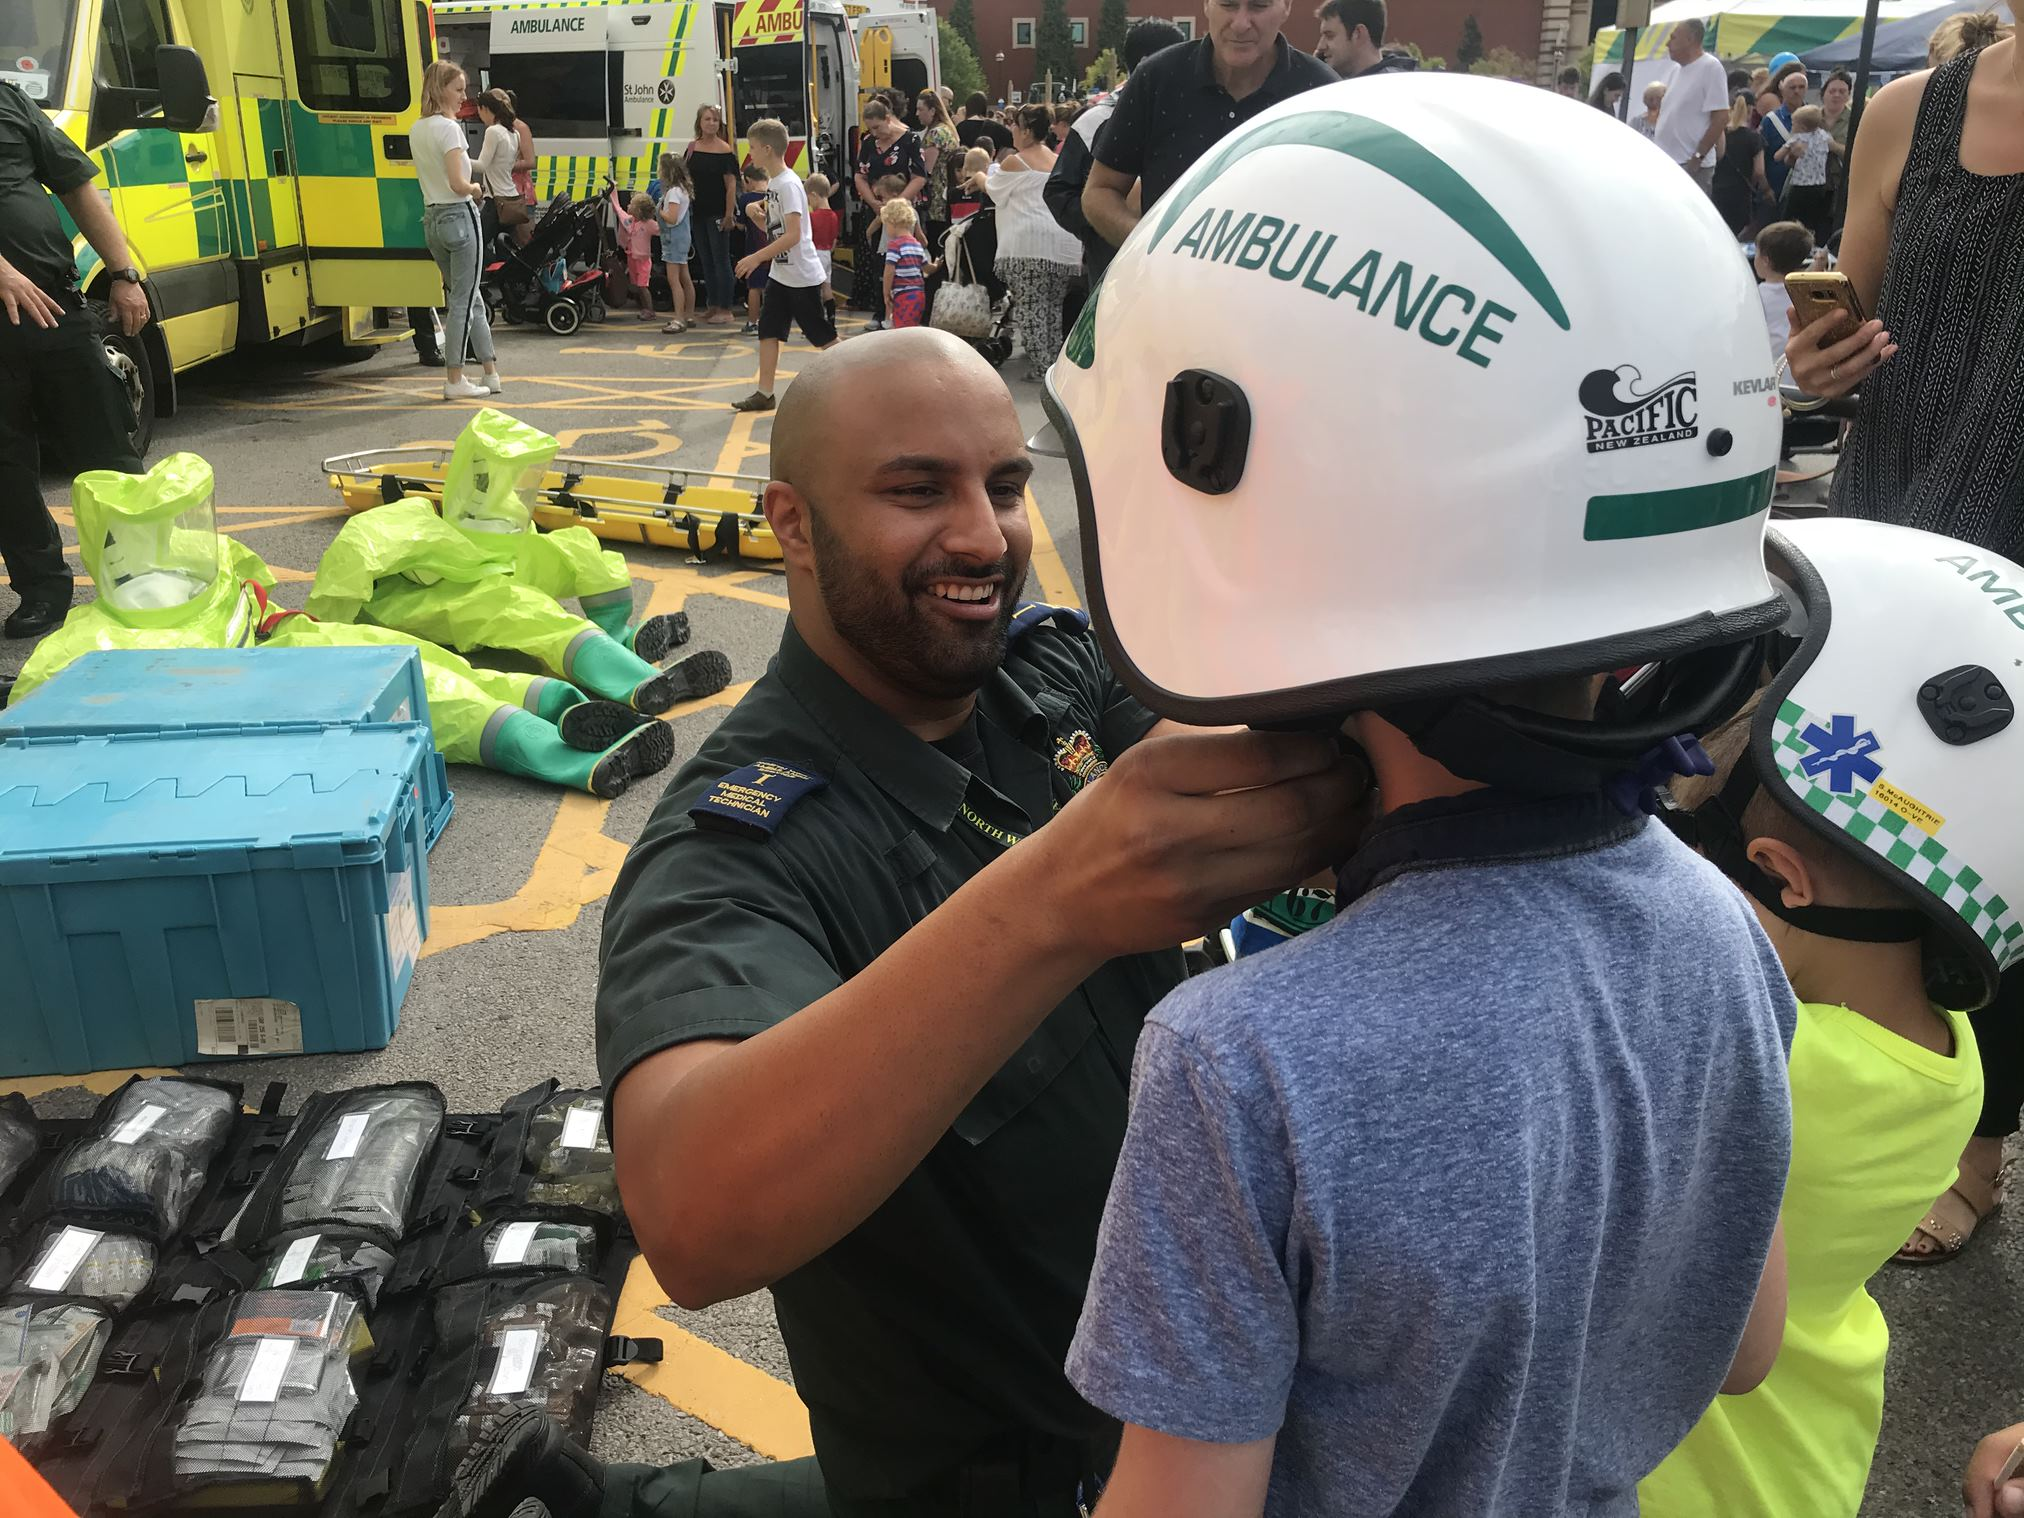 Paramedic helping young kids understand ambulance equipment.